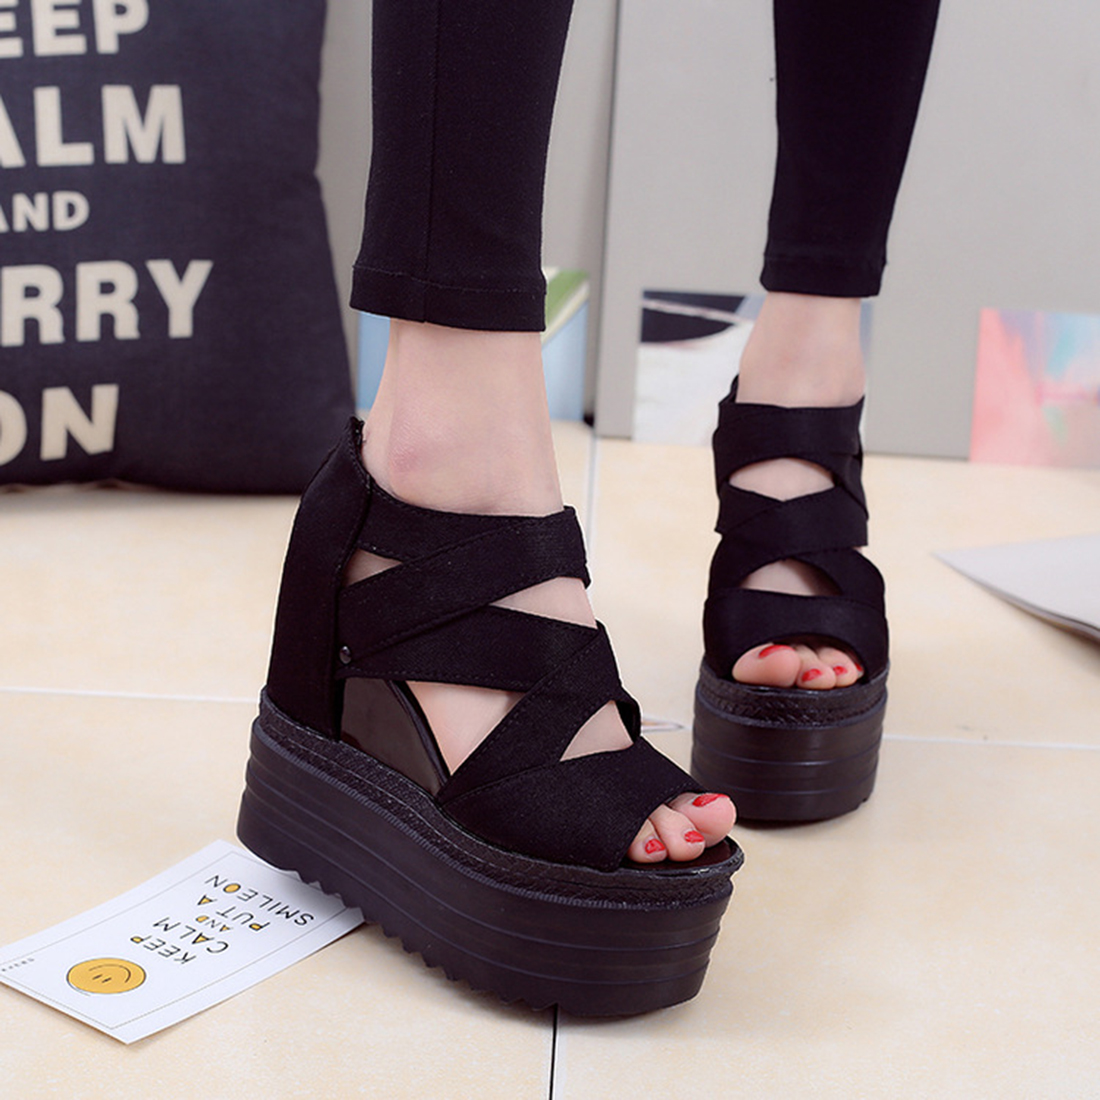 9fc1e56d320 2017 Korean Women Platform Shoes Gladiator Fish Head Woman Sandals Summer  Hollow Out Weave Wedge Ladies High heeled Sandal-in Women s Sandals from  Shoes on ...